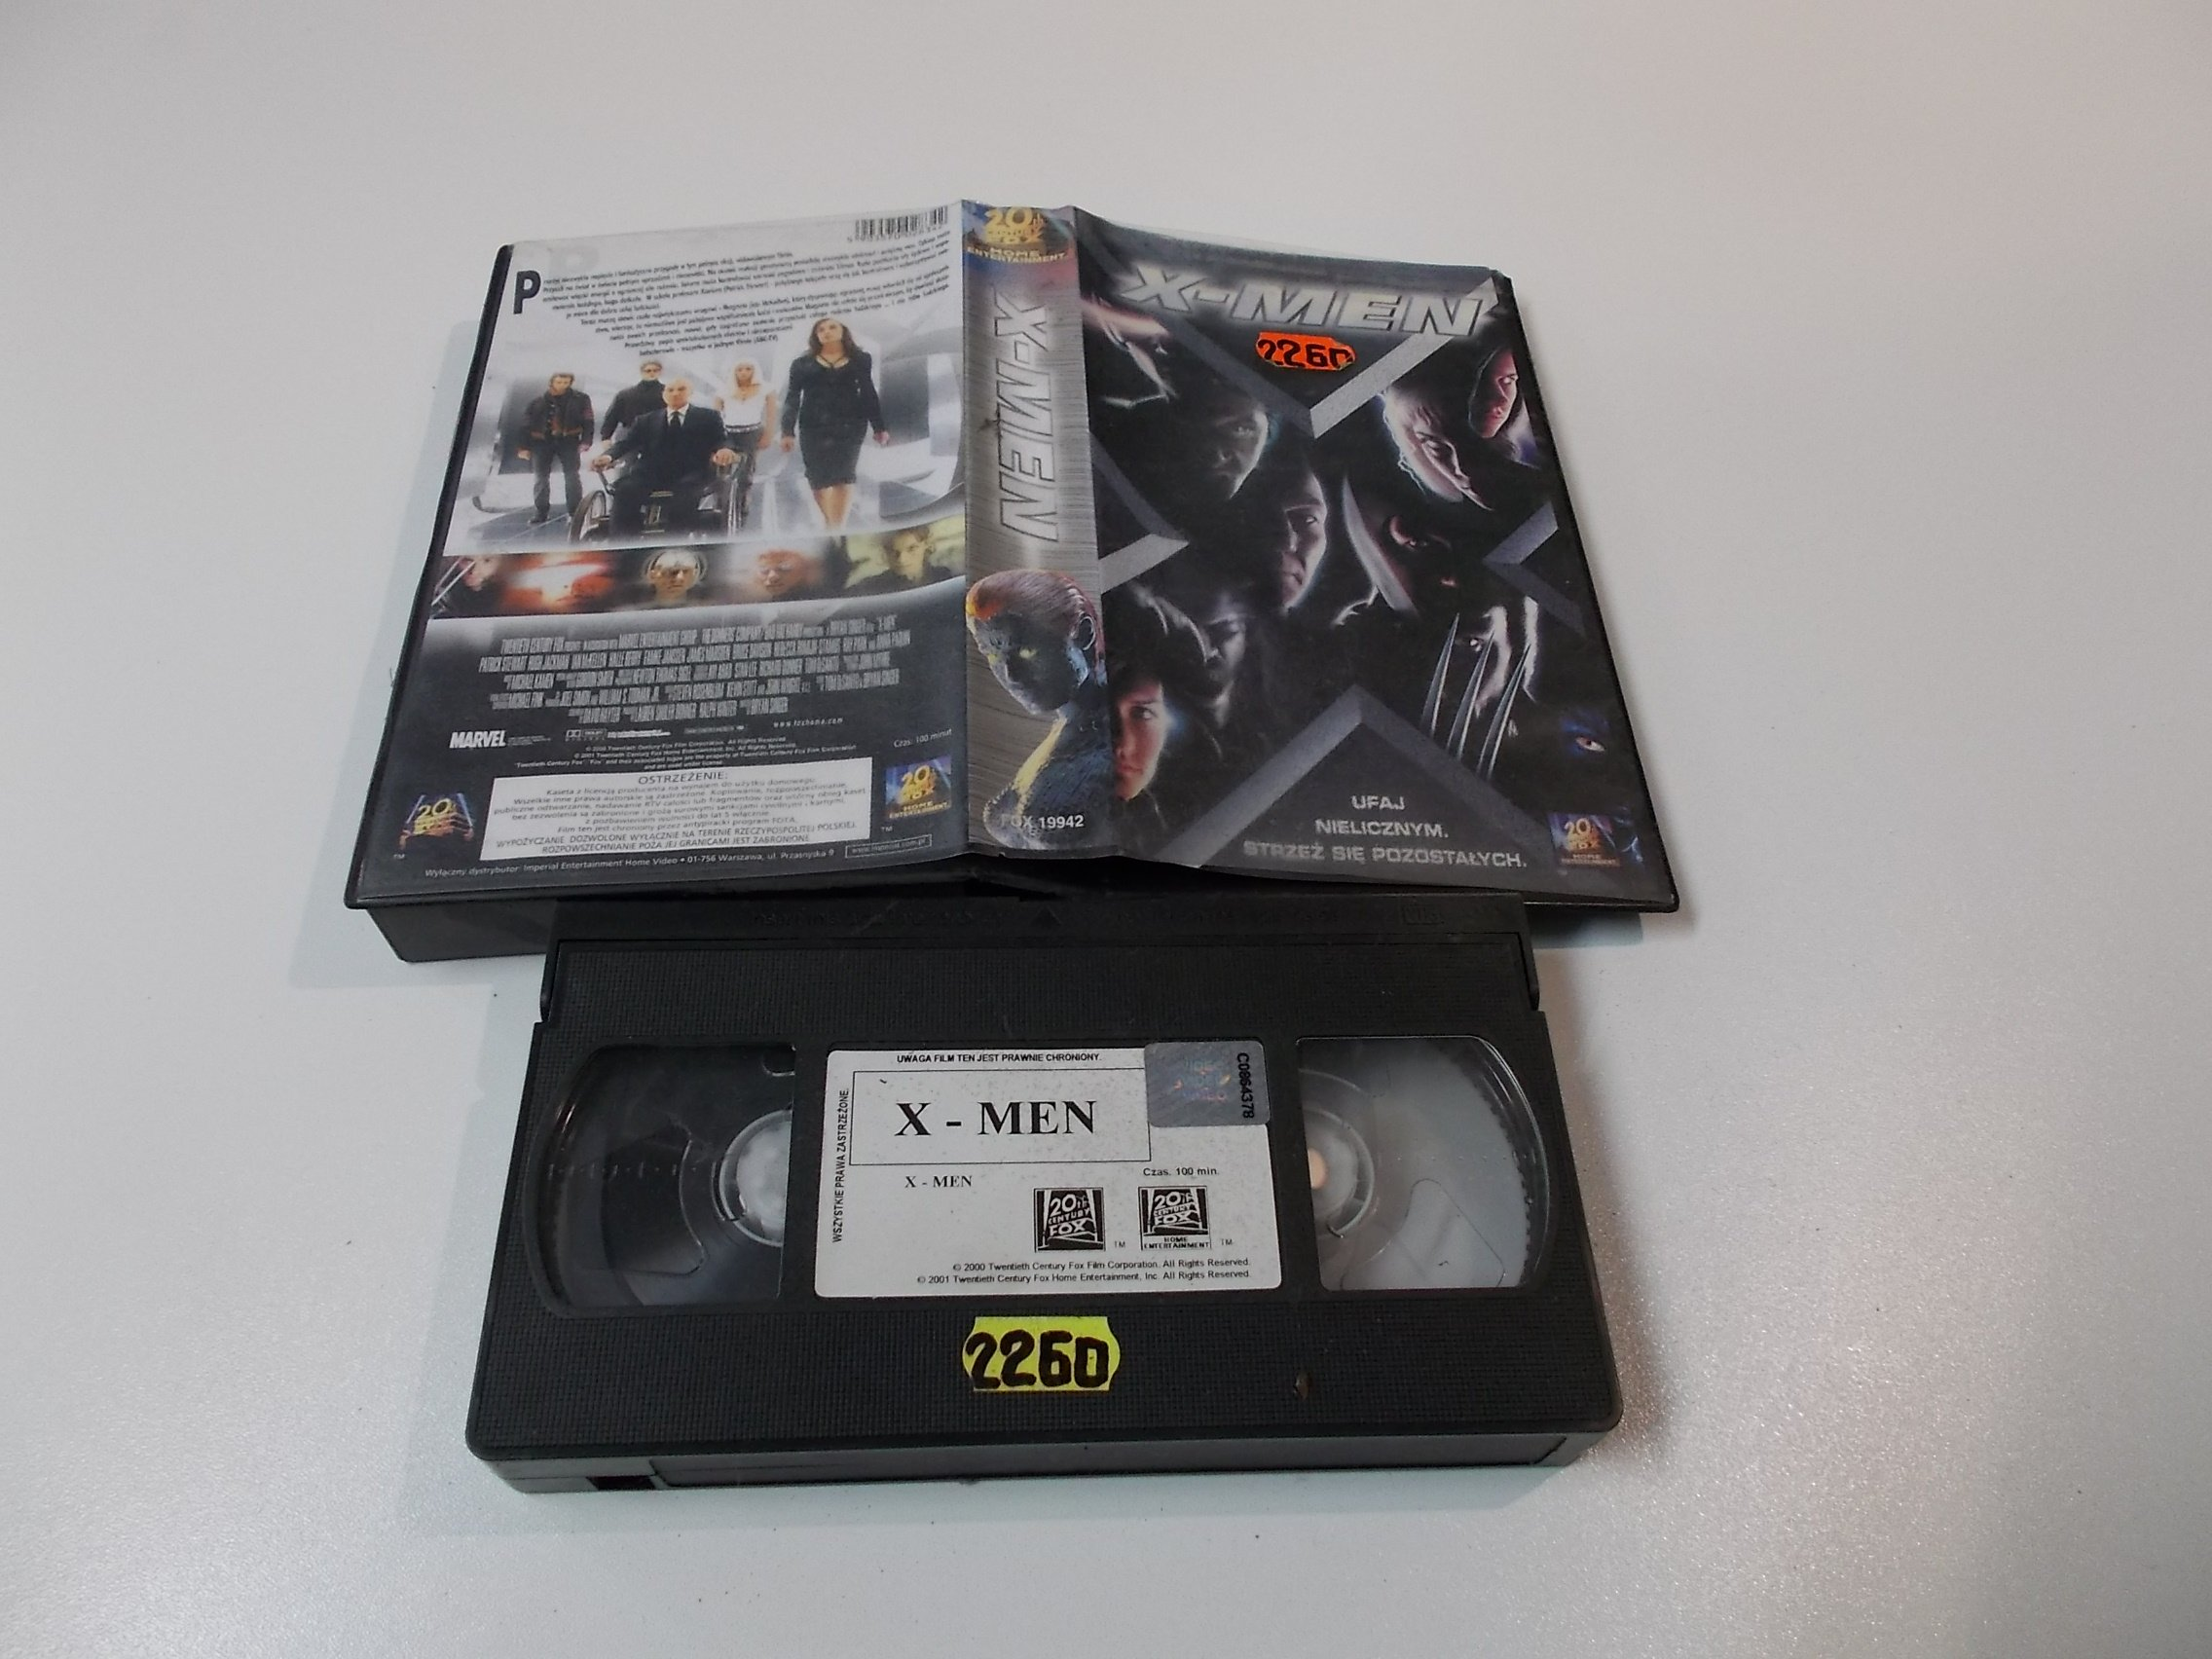 X-MEN - VHS Kaseta Video - Opole 1595